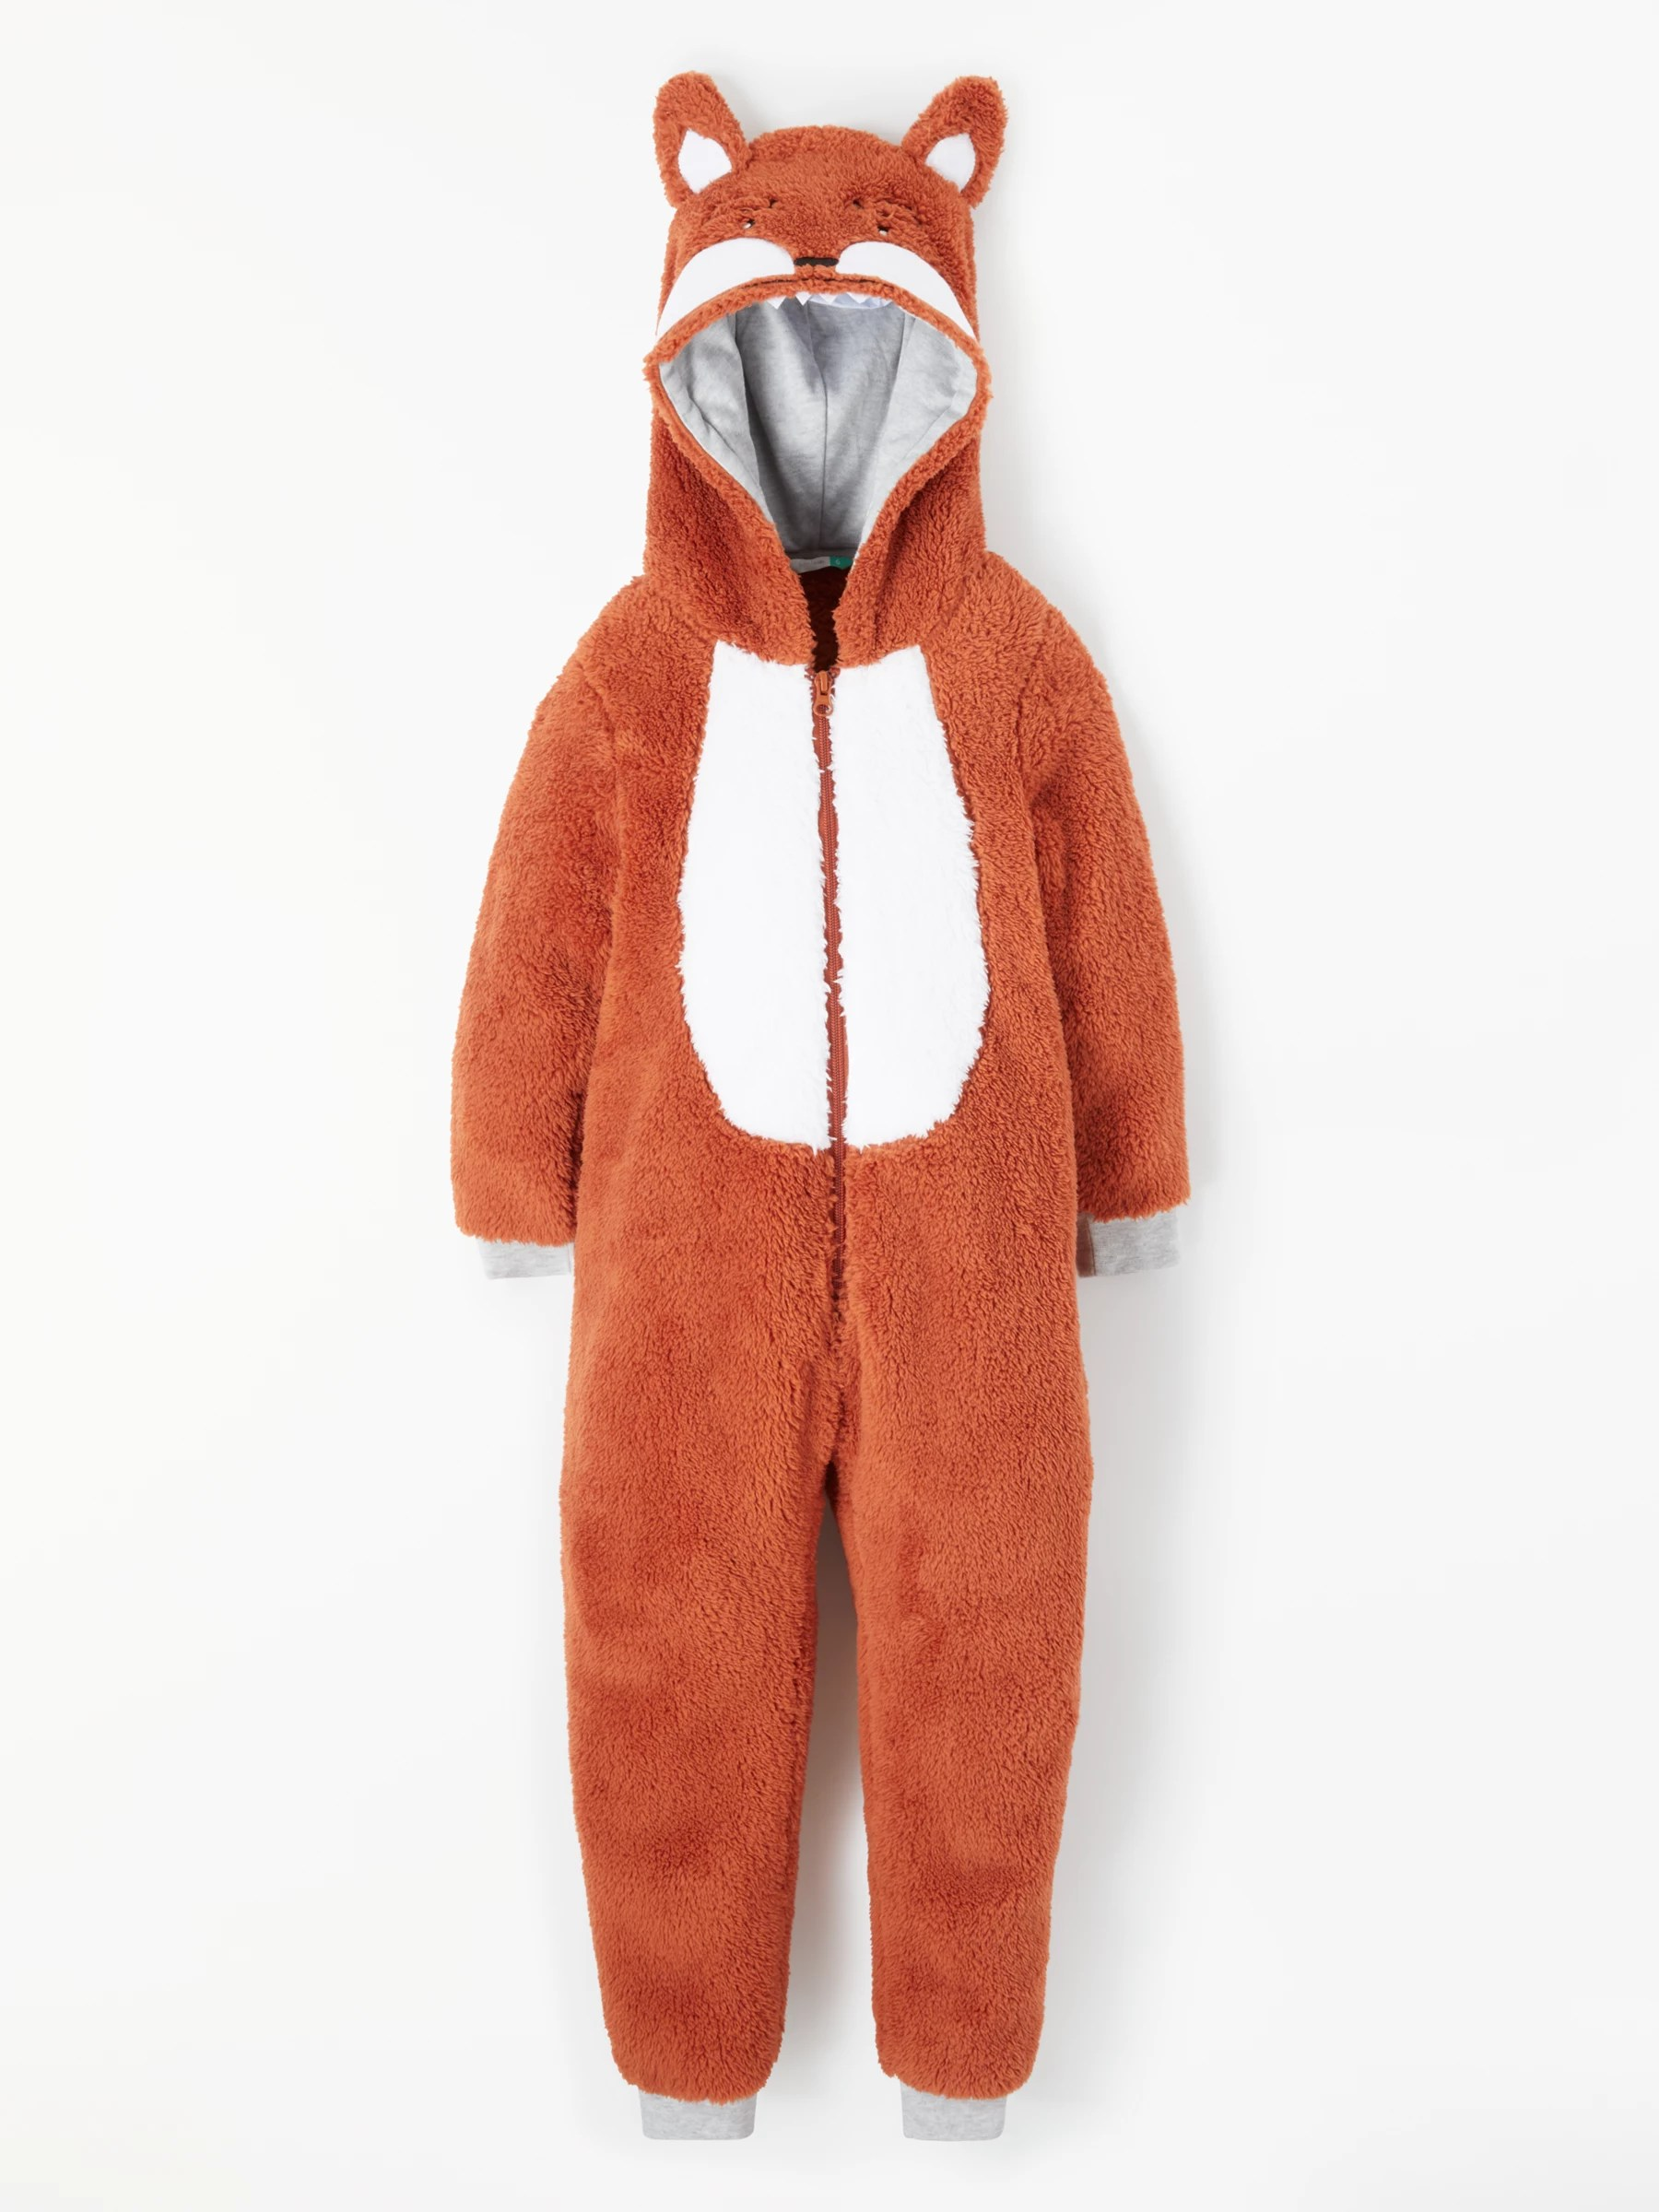 Image of: Bear John Lewis Partners Boys Fox Fleece Onesie Orange Mamabearph Boys Nightwear Pyjamas Robes Onesis John Lewis